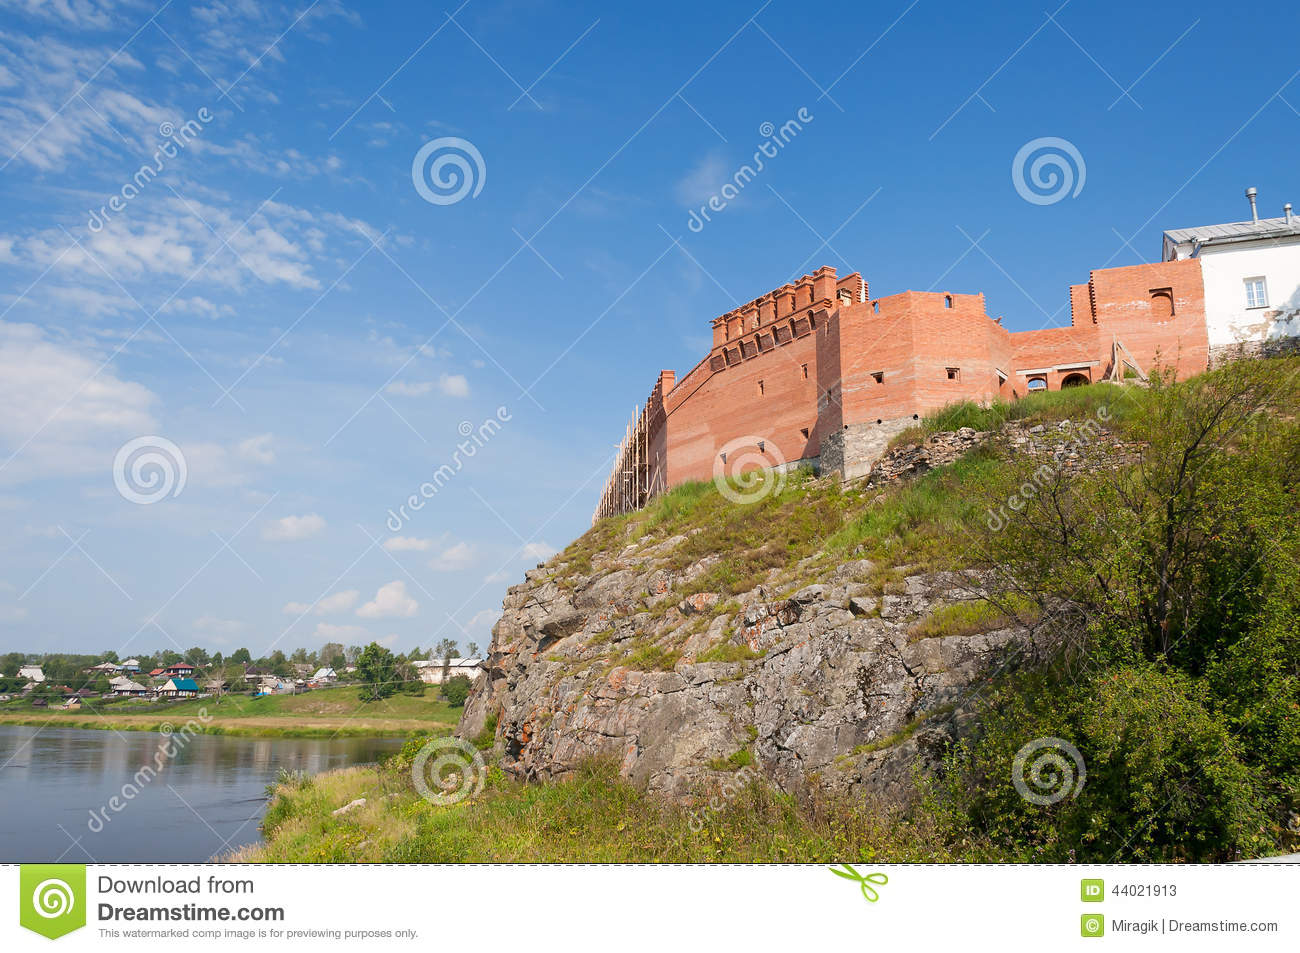 Kremlin on the banks of the River Tura